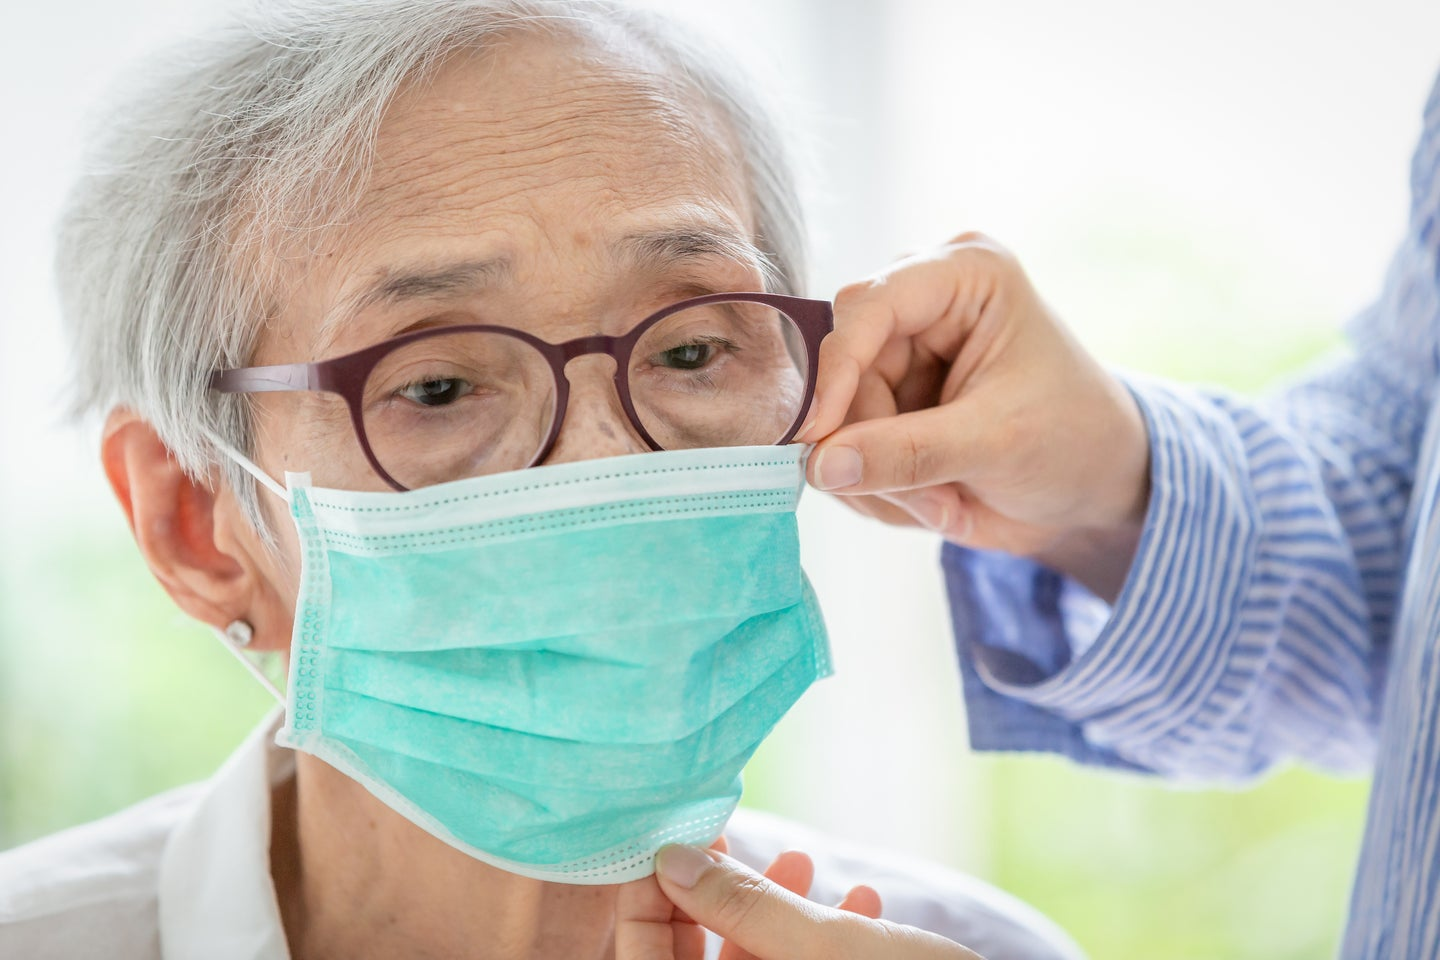 someone helps an older woman put on a face mask